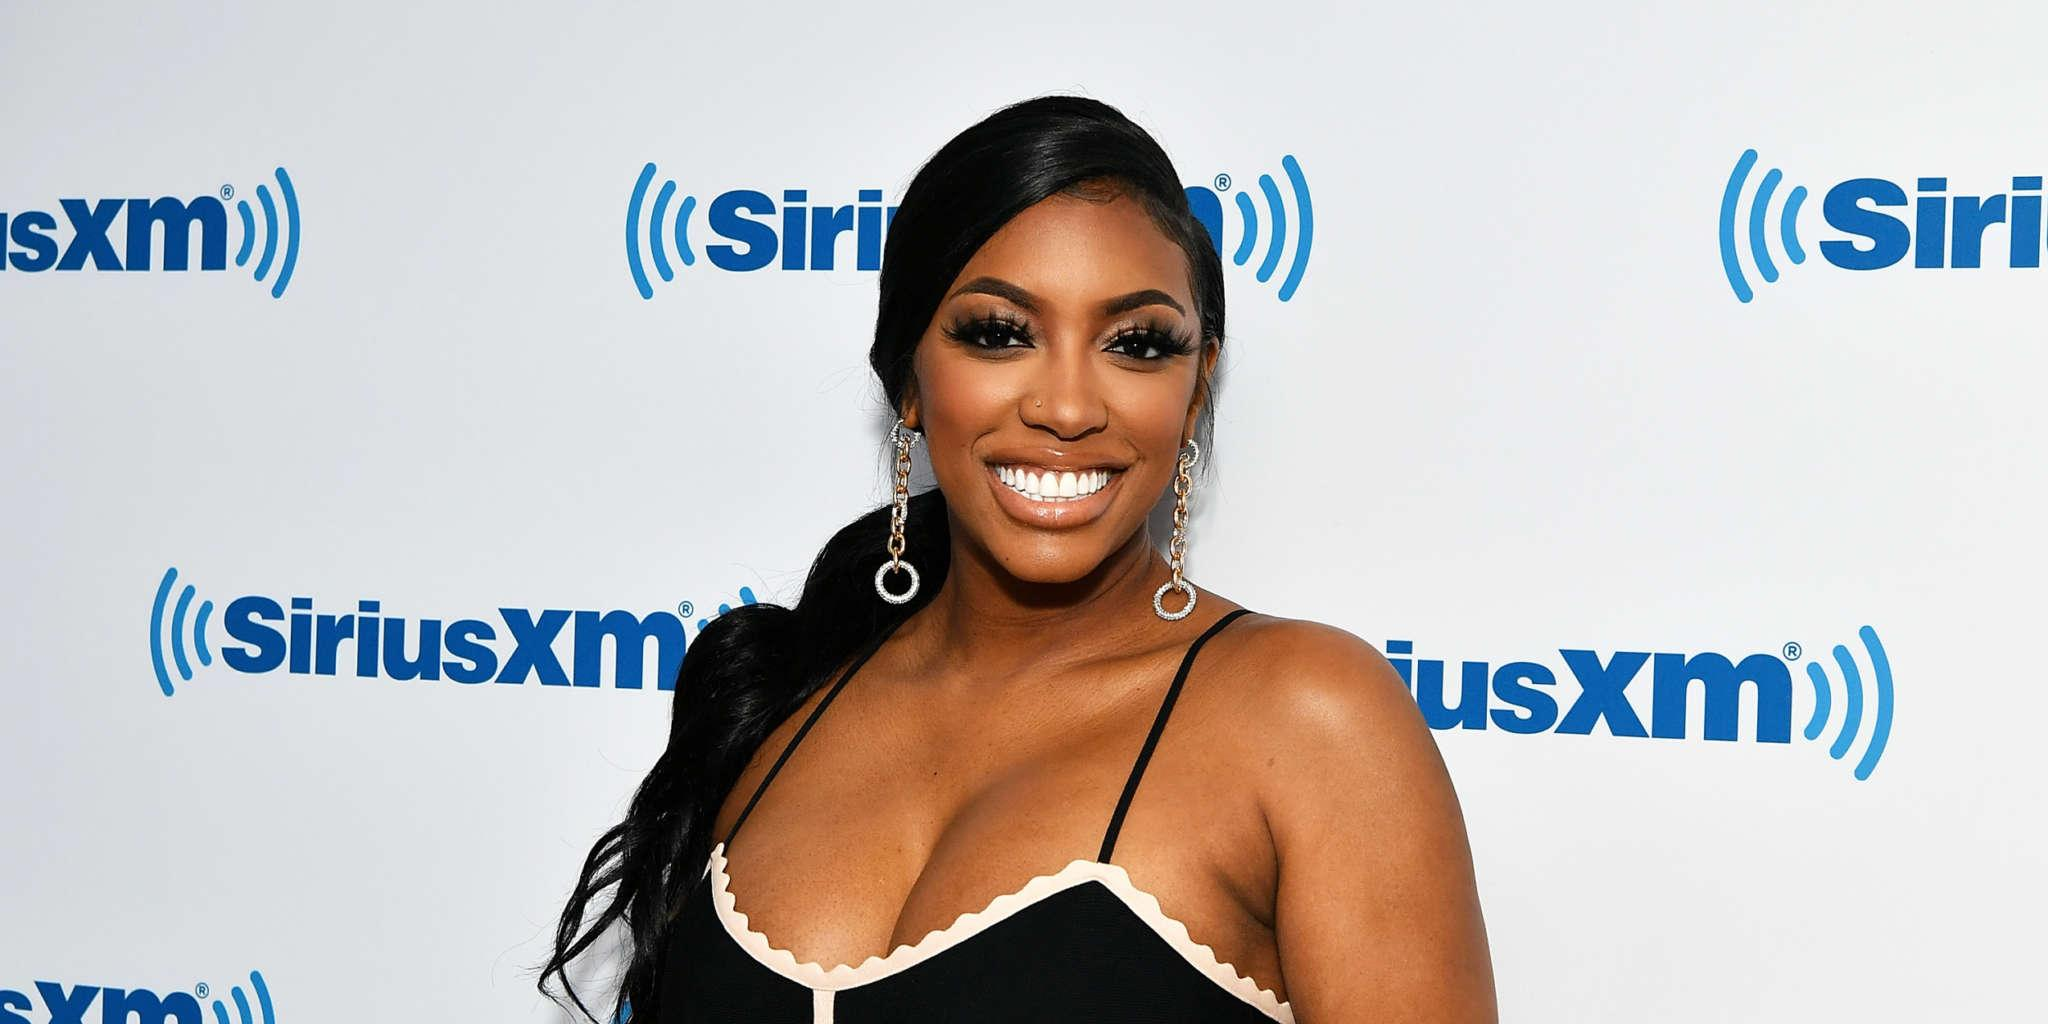 Porsha Williams Is One Of The Moderators For The Virtual Town Hall In Memory of Micheal Brown Jr. !